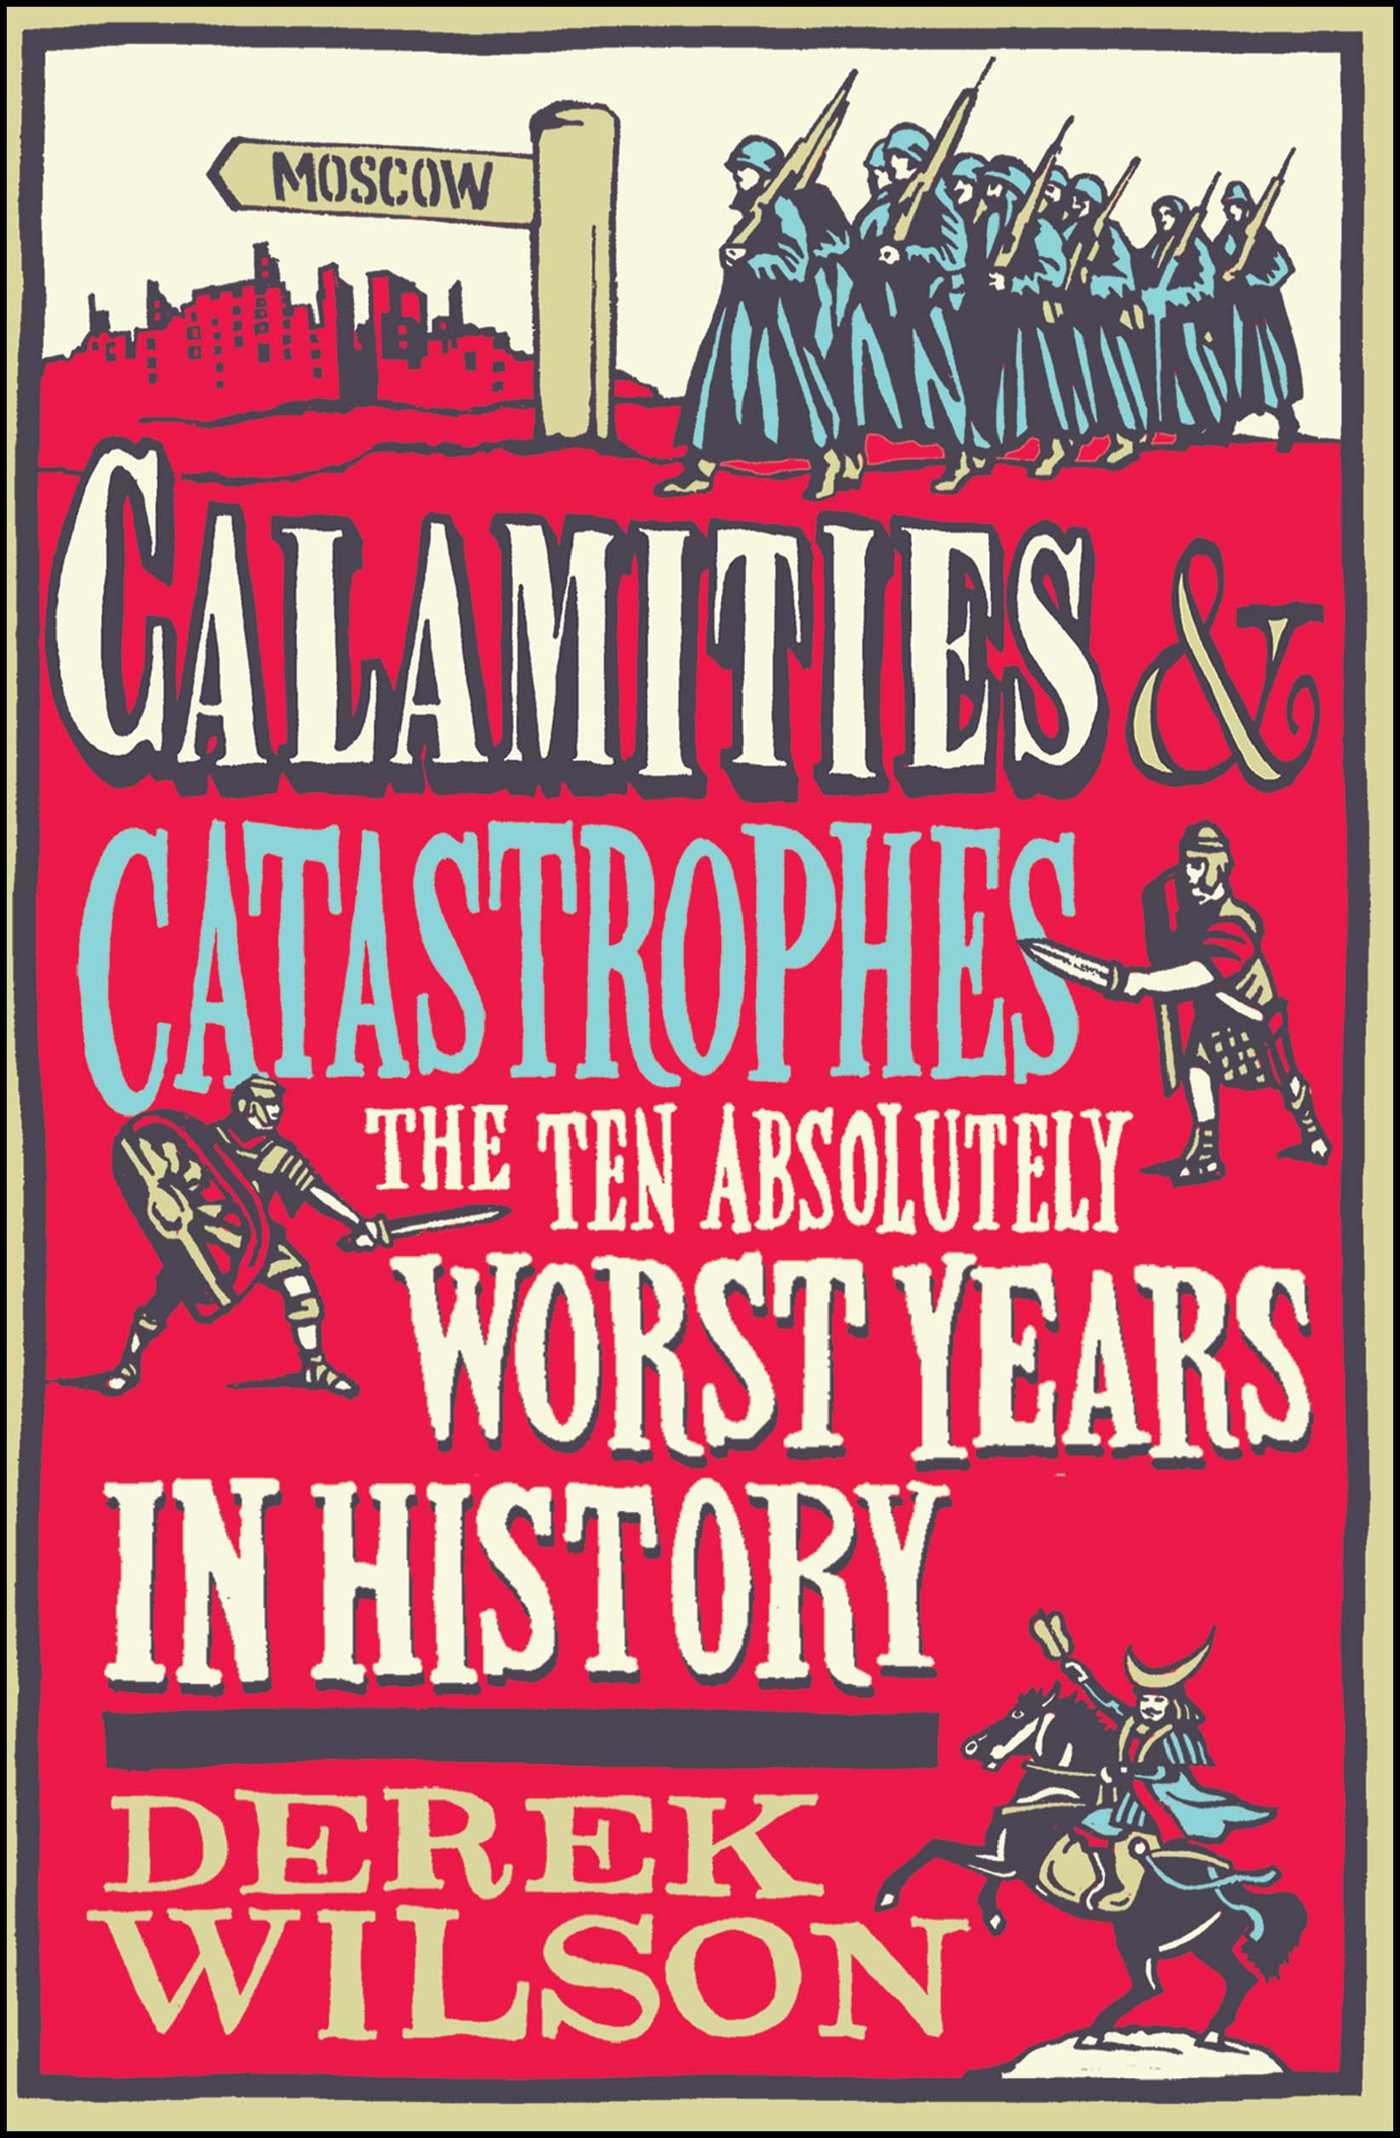 Calamities-catastrophes-9781476718828_hr